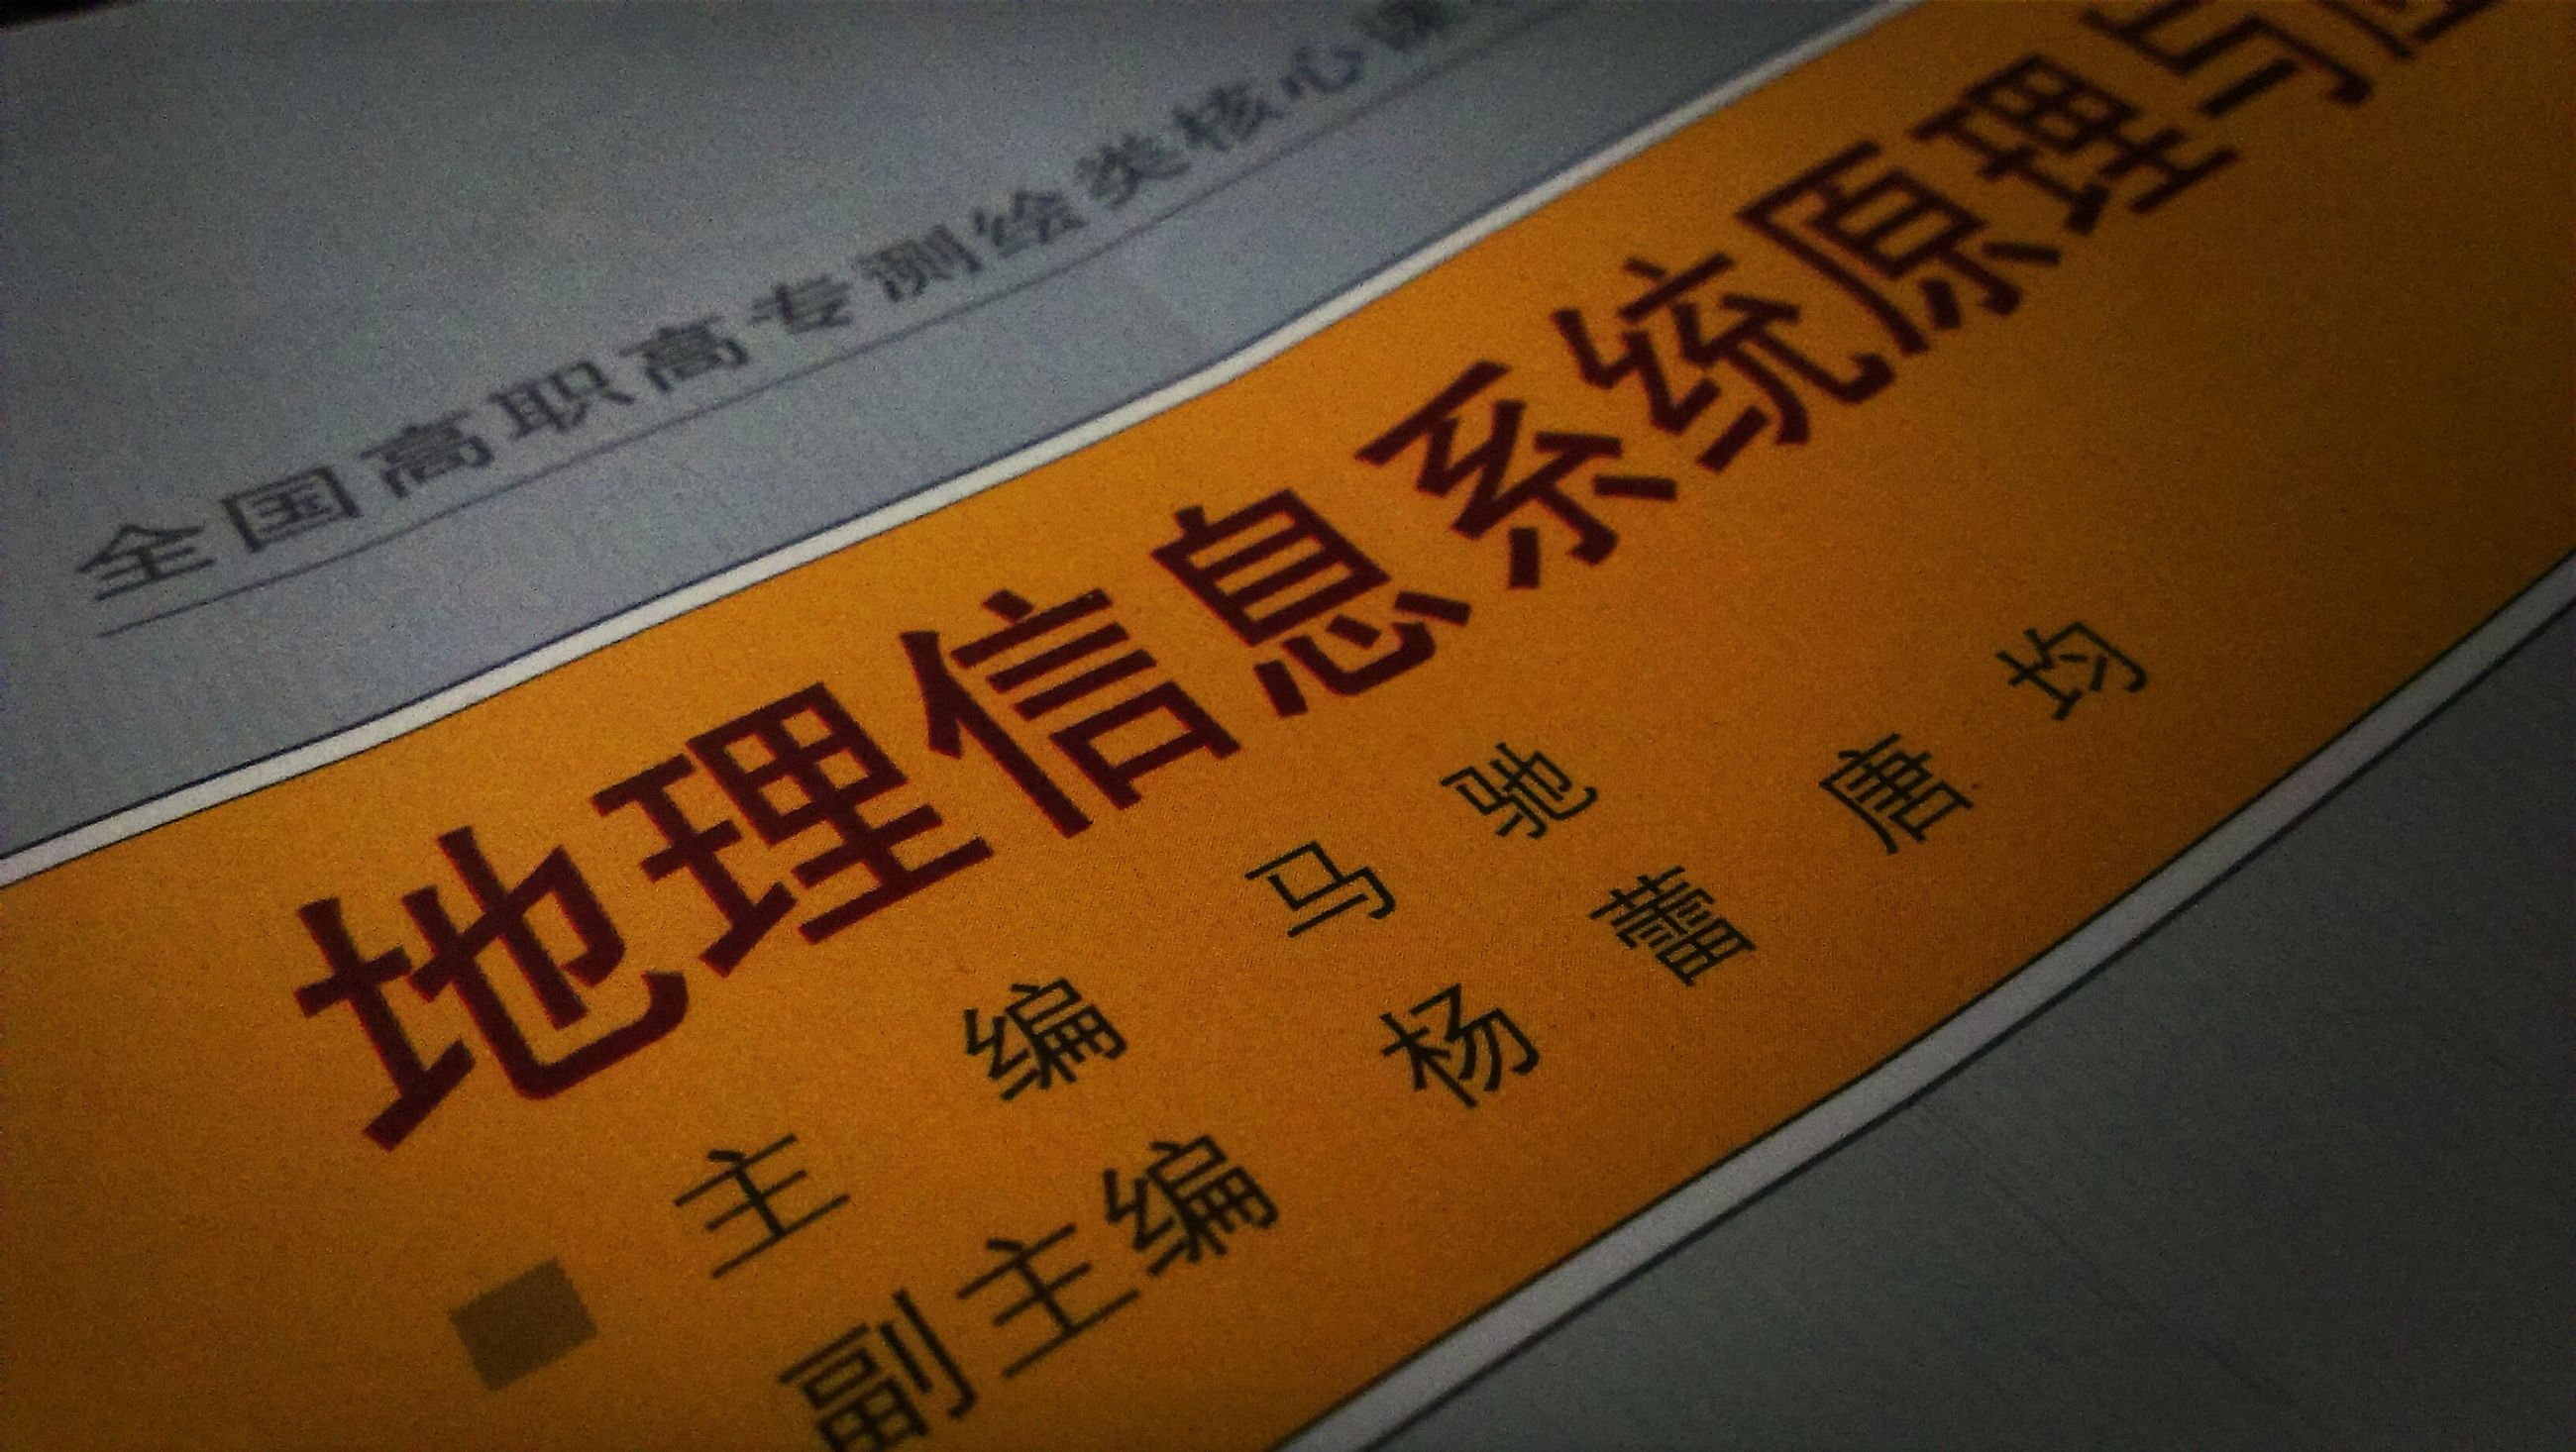 text, western script, communication, indoors, non-western script, yellow, information, capital letter, close-up, number, no people, information sign, message, paper, high angle view, sign, handwriting, guidance, still life, education